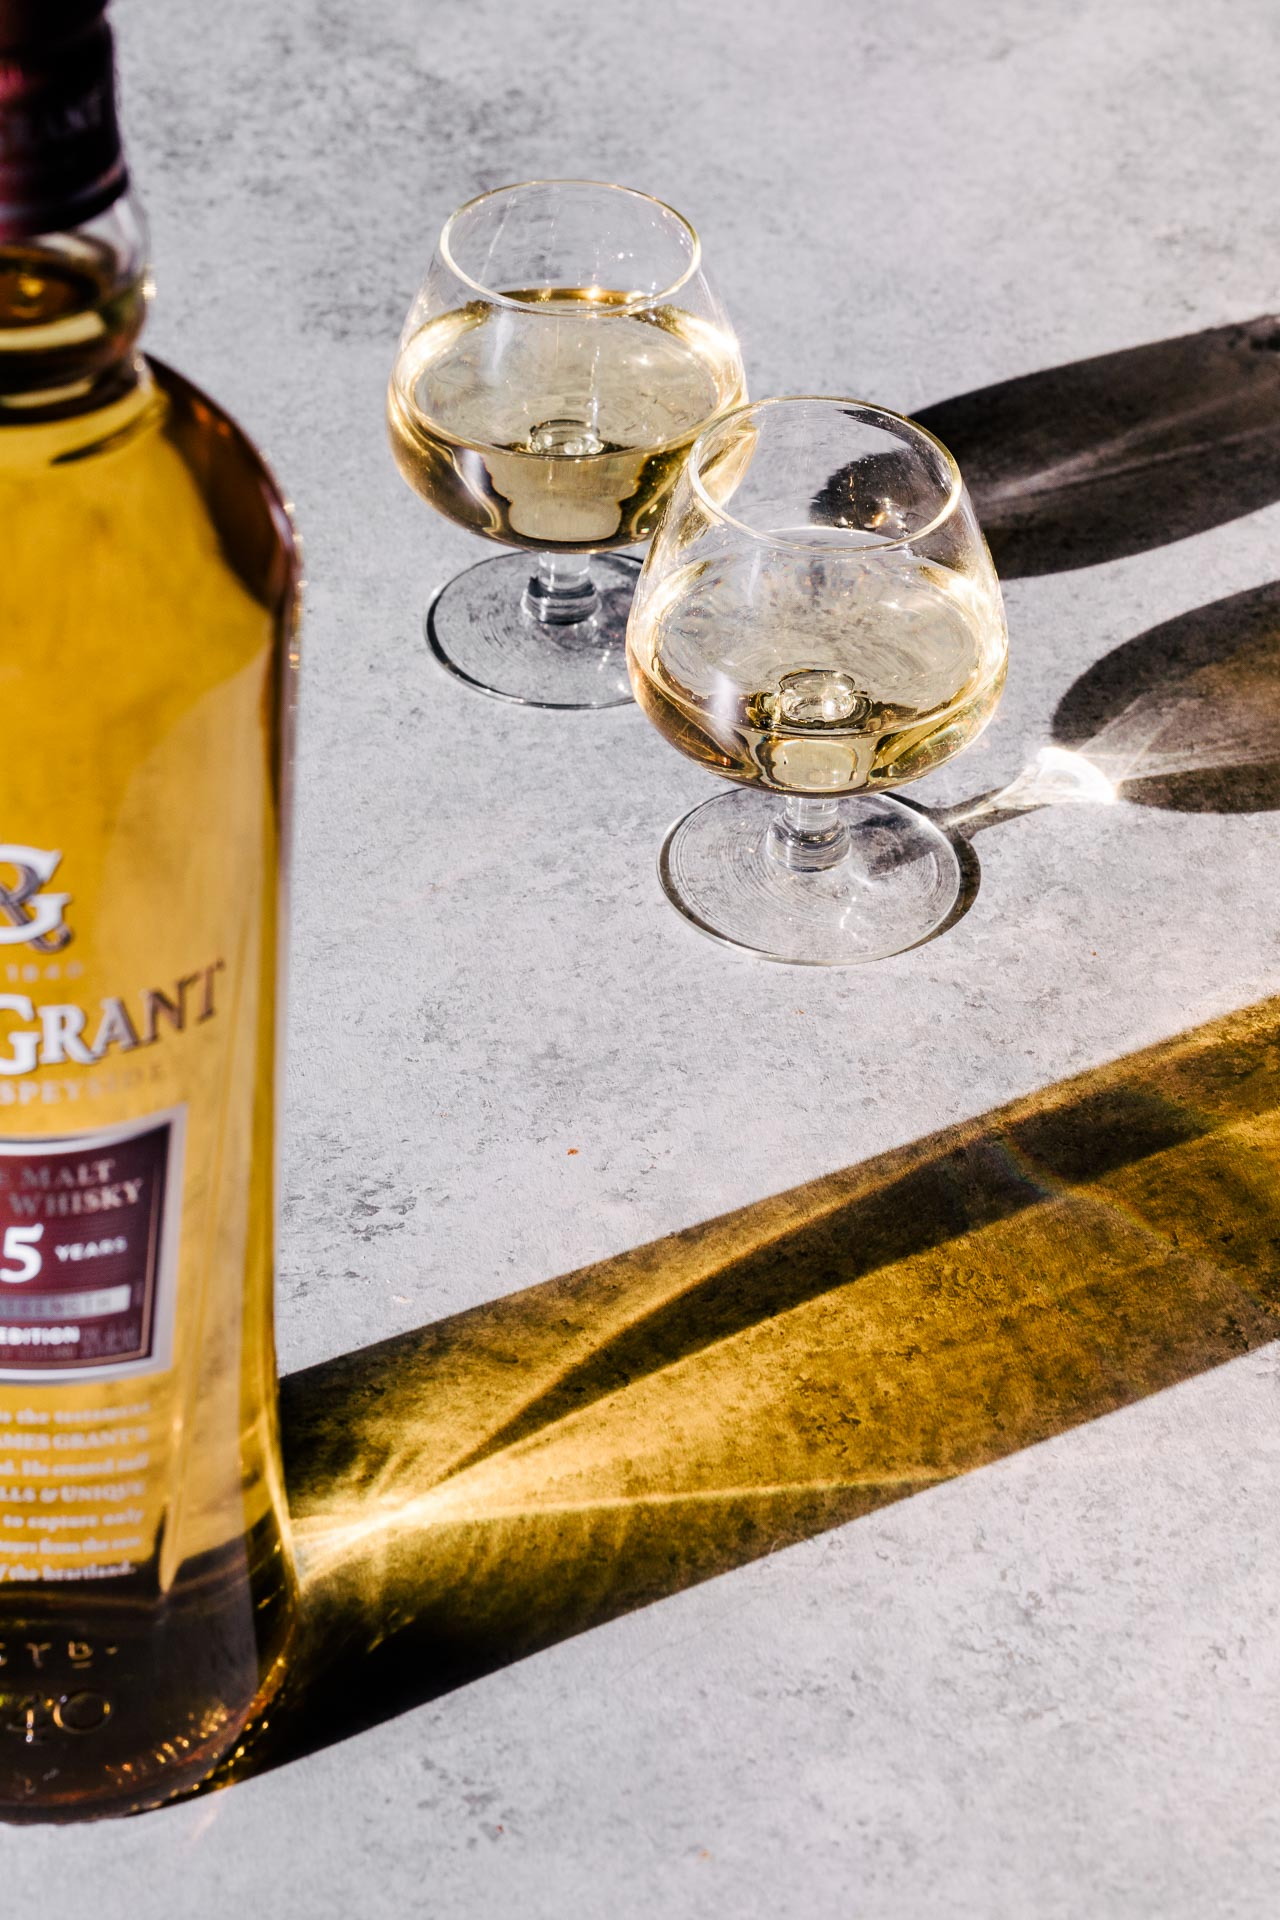 Glen Grant 15 Year Speyside Single Malt Scotch || HonestlyYUM (honestlyyum.com) #whiskey #scotch #singlemalt #speyside